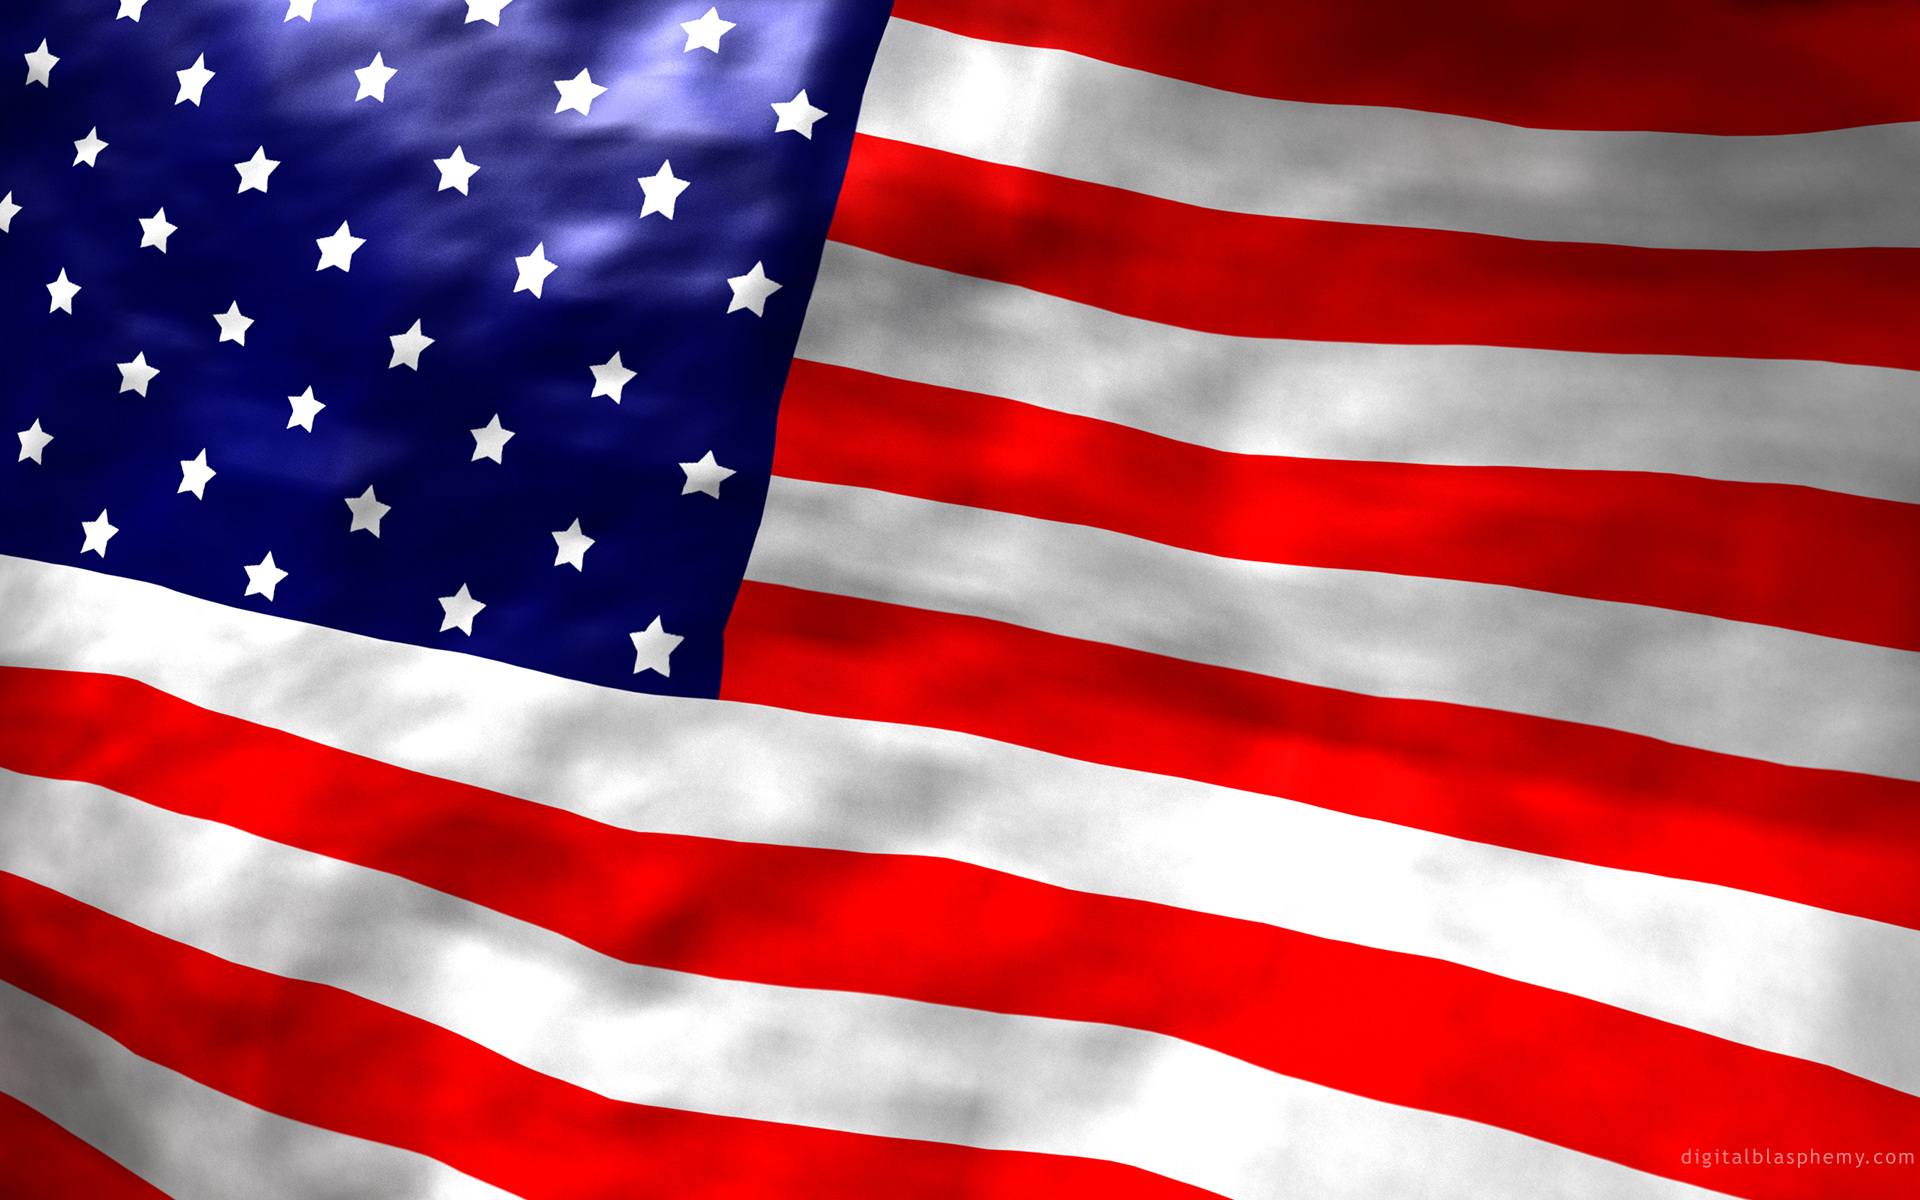 Download Flags USA Wallpaper 1920x1200 Wallpoper 398769 1920x1200